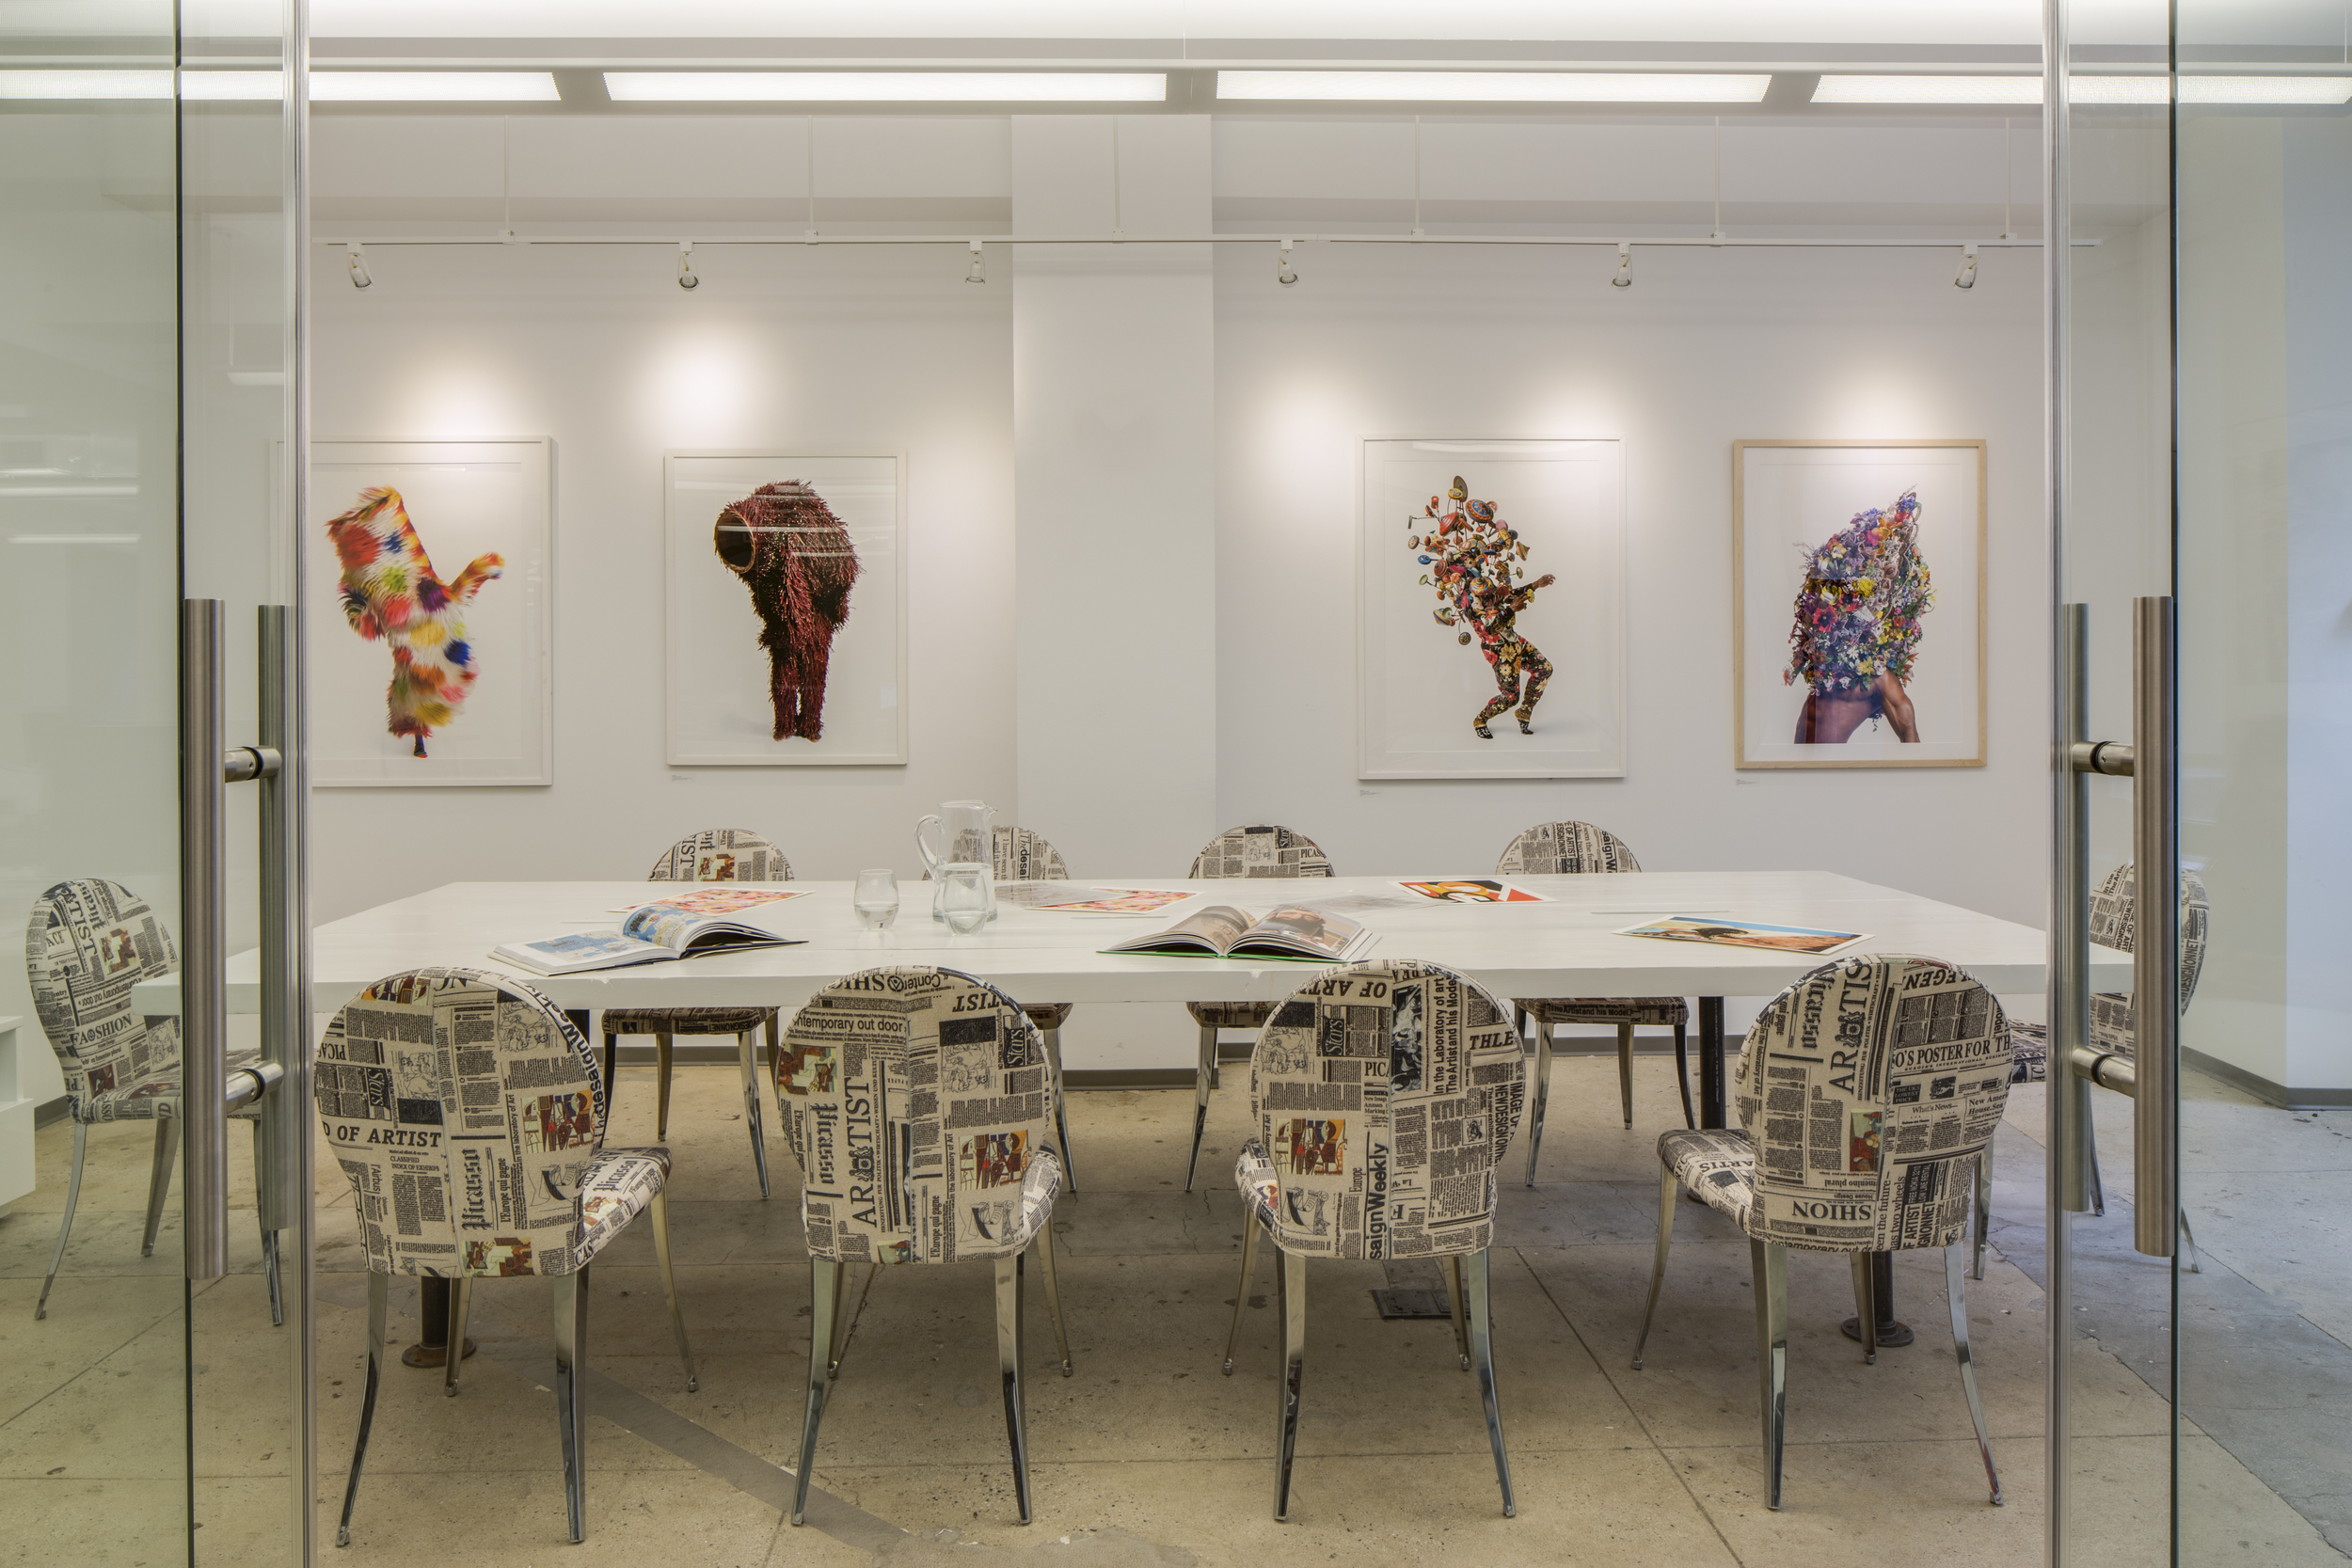 The conference room with Eurostyle chairs upholstered in newspaper fabric. The photographs on the wall are a limited edition by Nick Cave for Artspace.